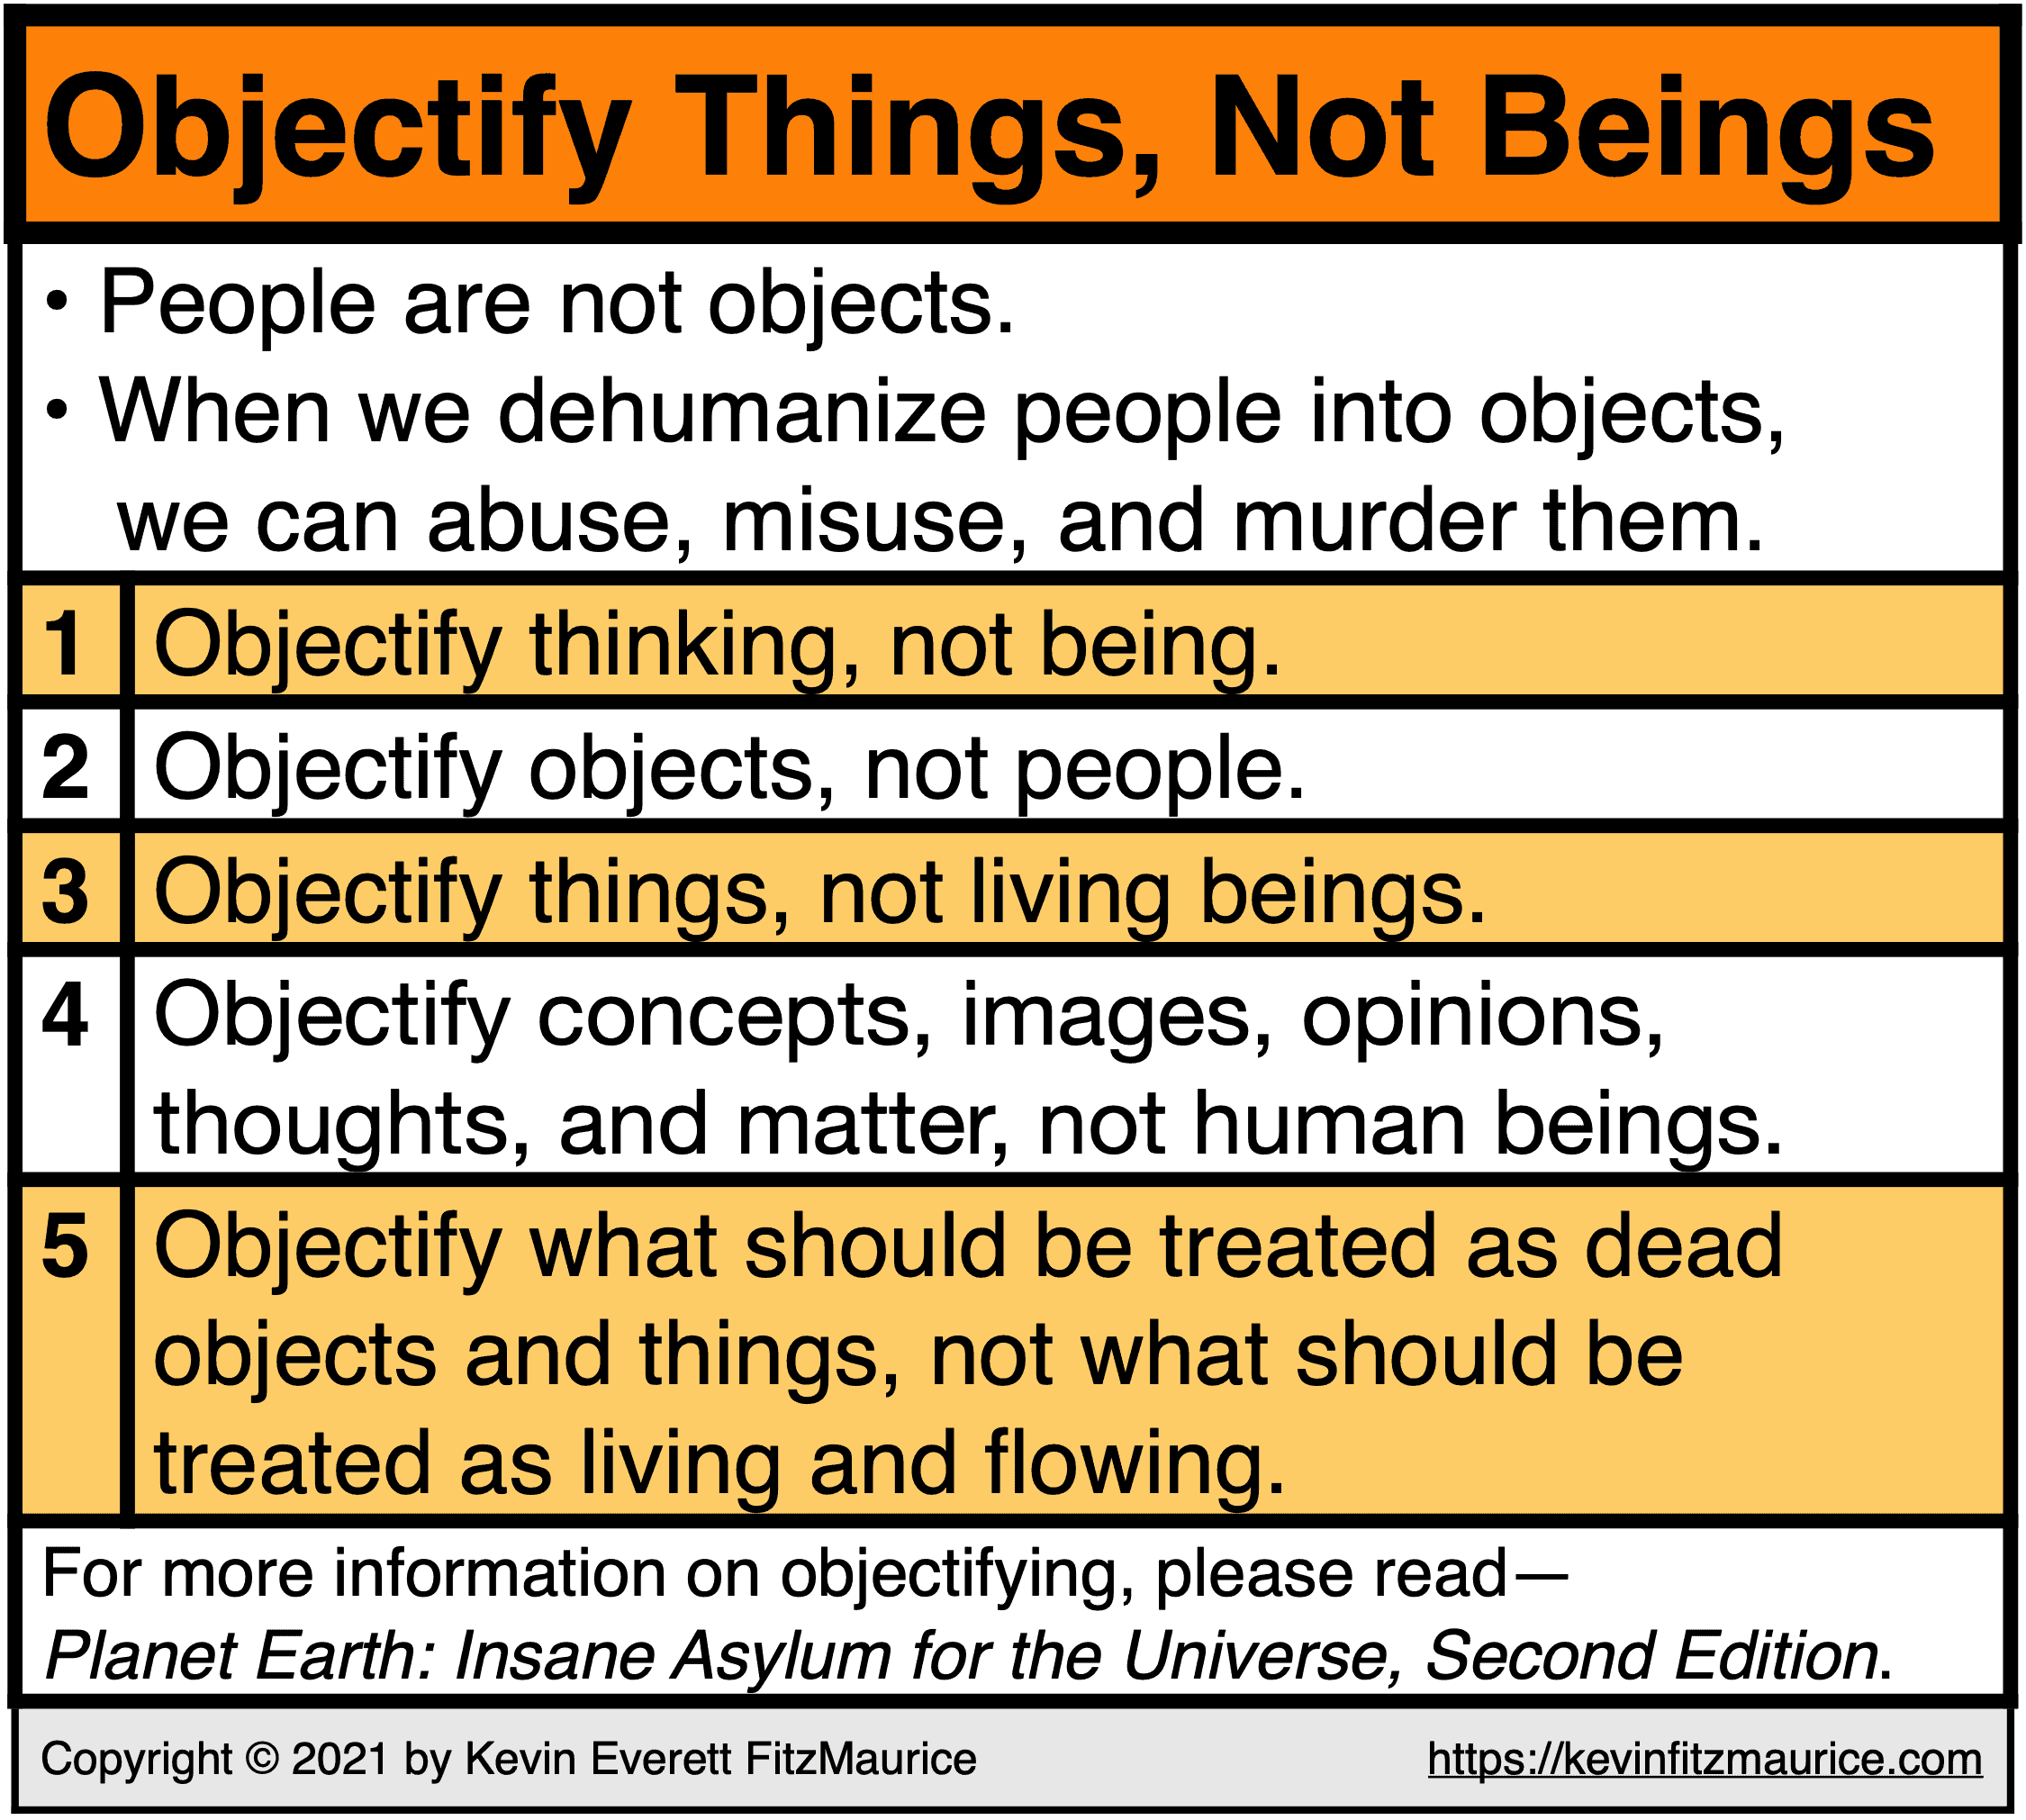 Objectify Things, Not Beings